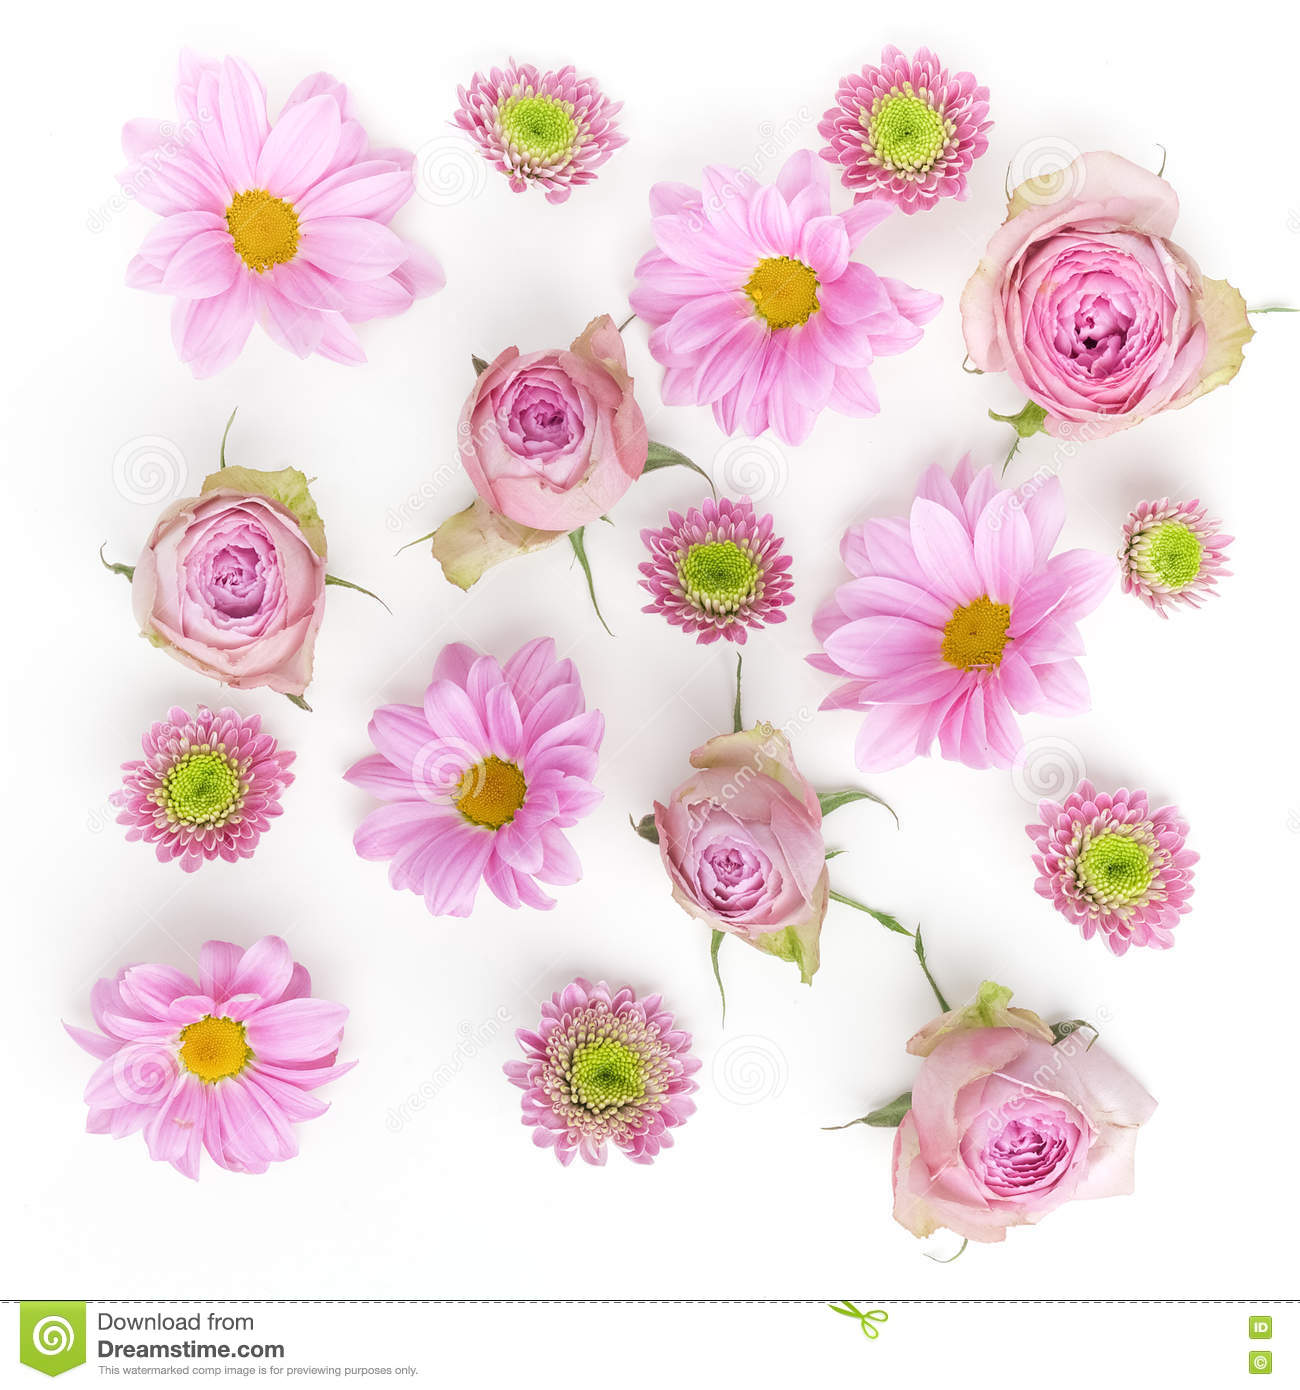 Wallpaper Texture Pink Flowers On White Background Flat Lay Top